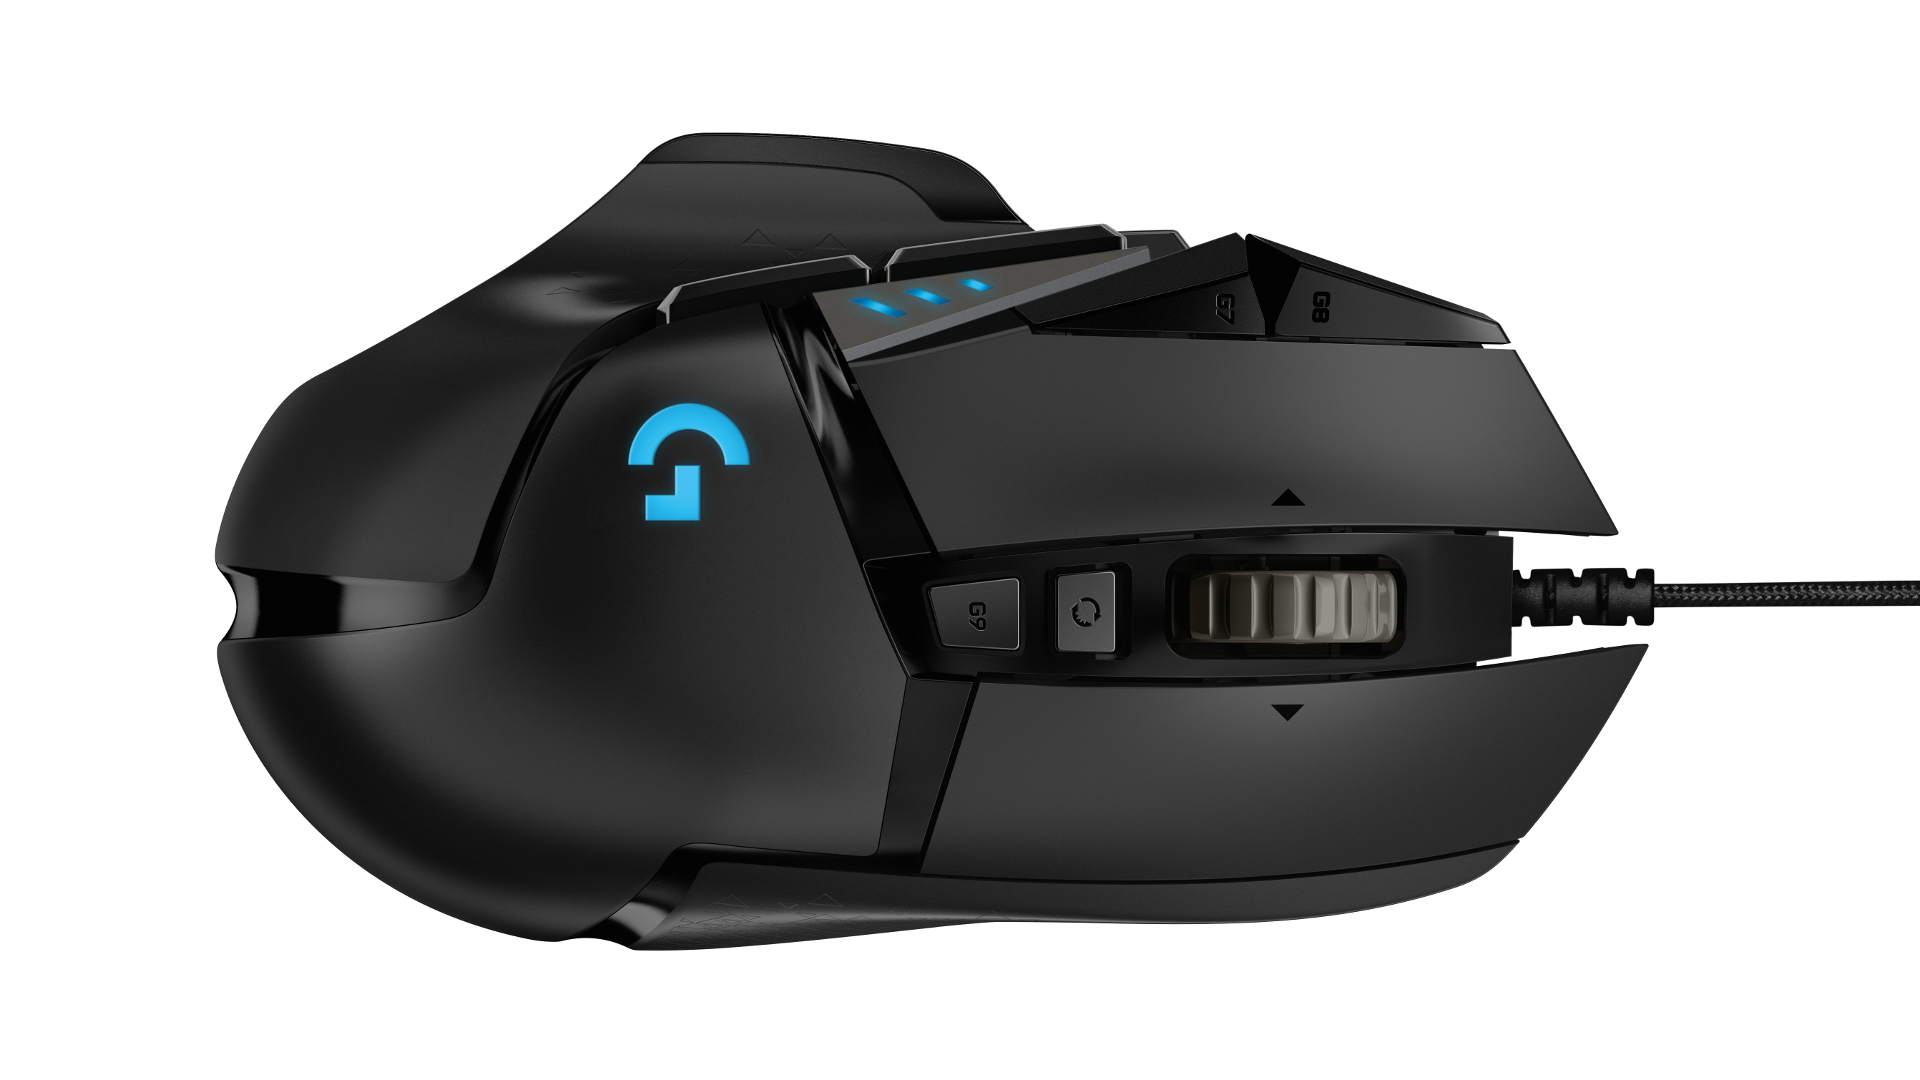 0cf78869d7e Logitech's upgraded G502 Hero Gaming Mouse boasts super-accurate tracking |  TechRadar